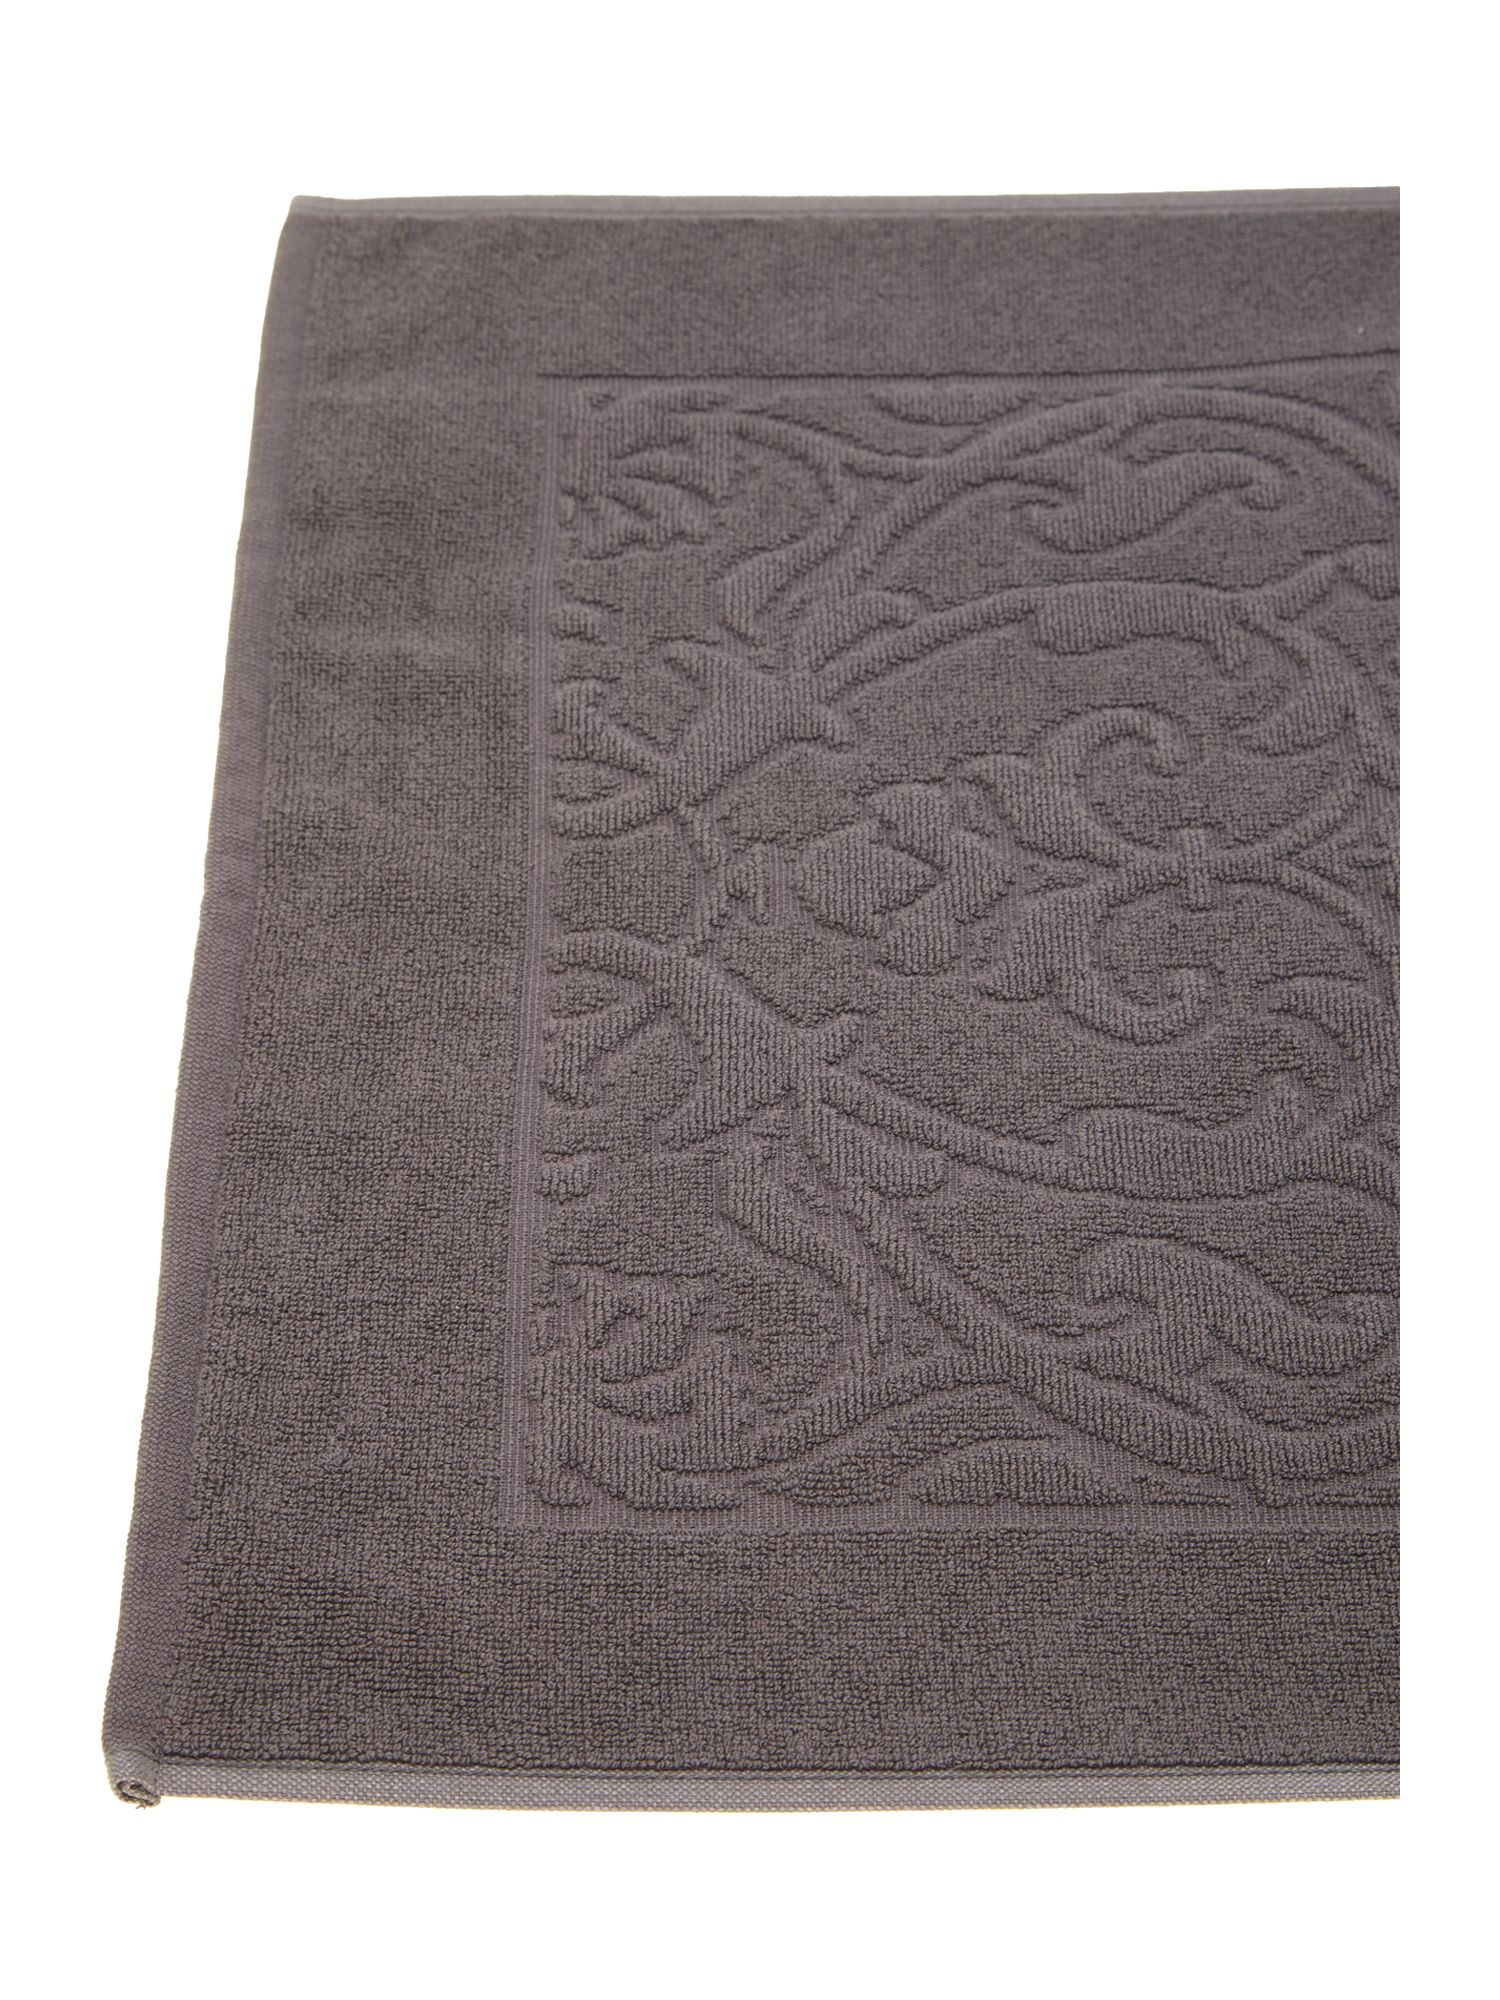 Heavy jacquard bath mat in charcoal